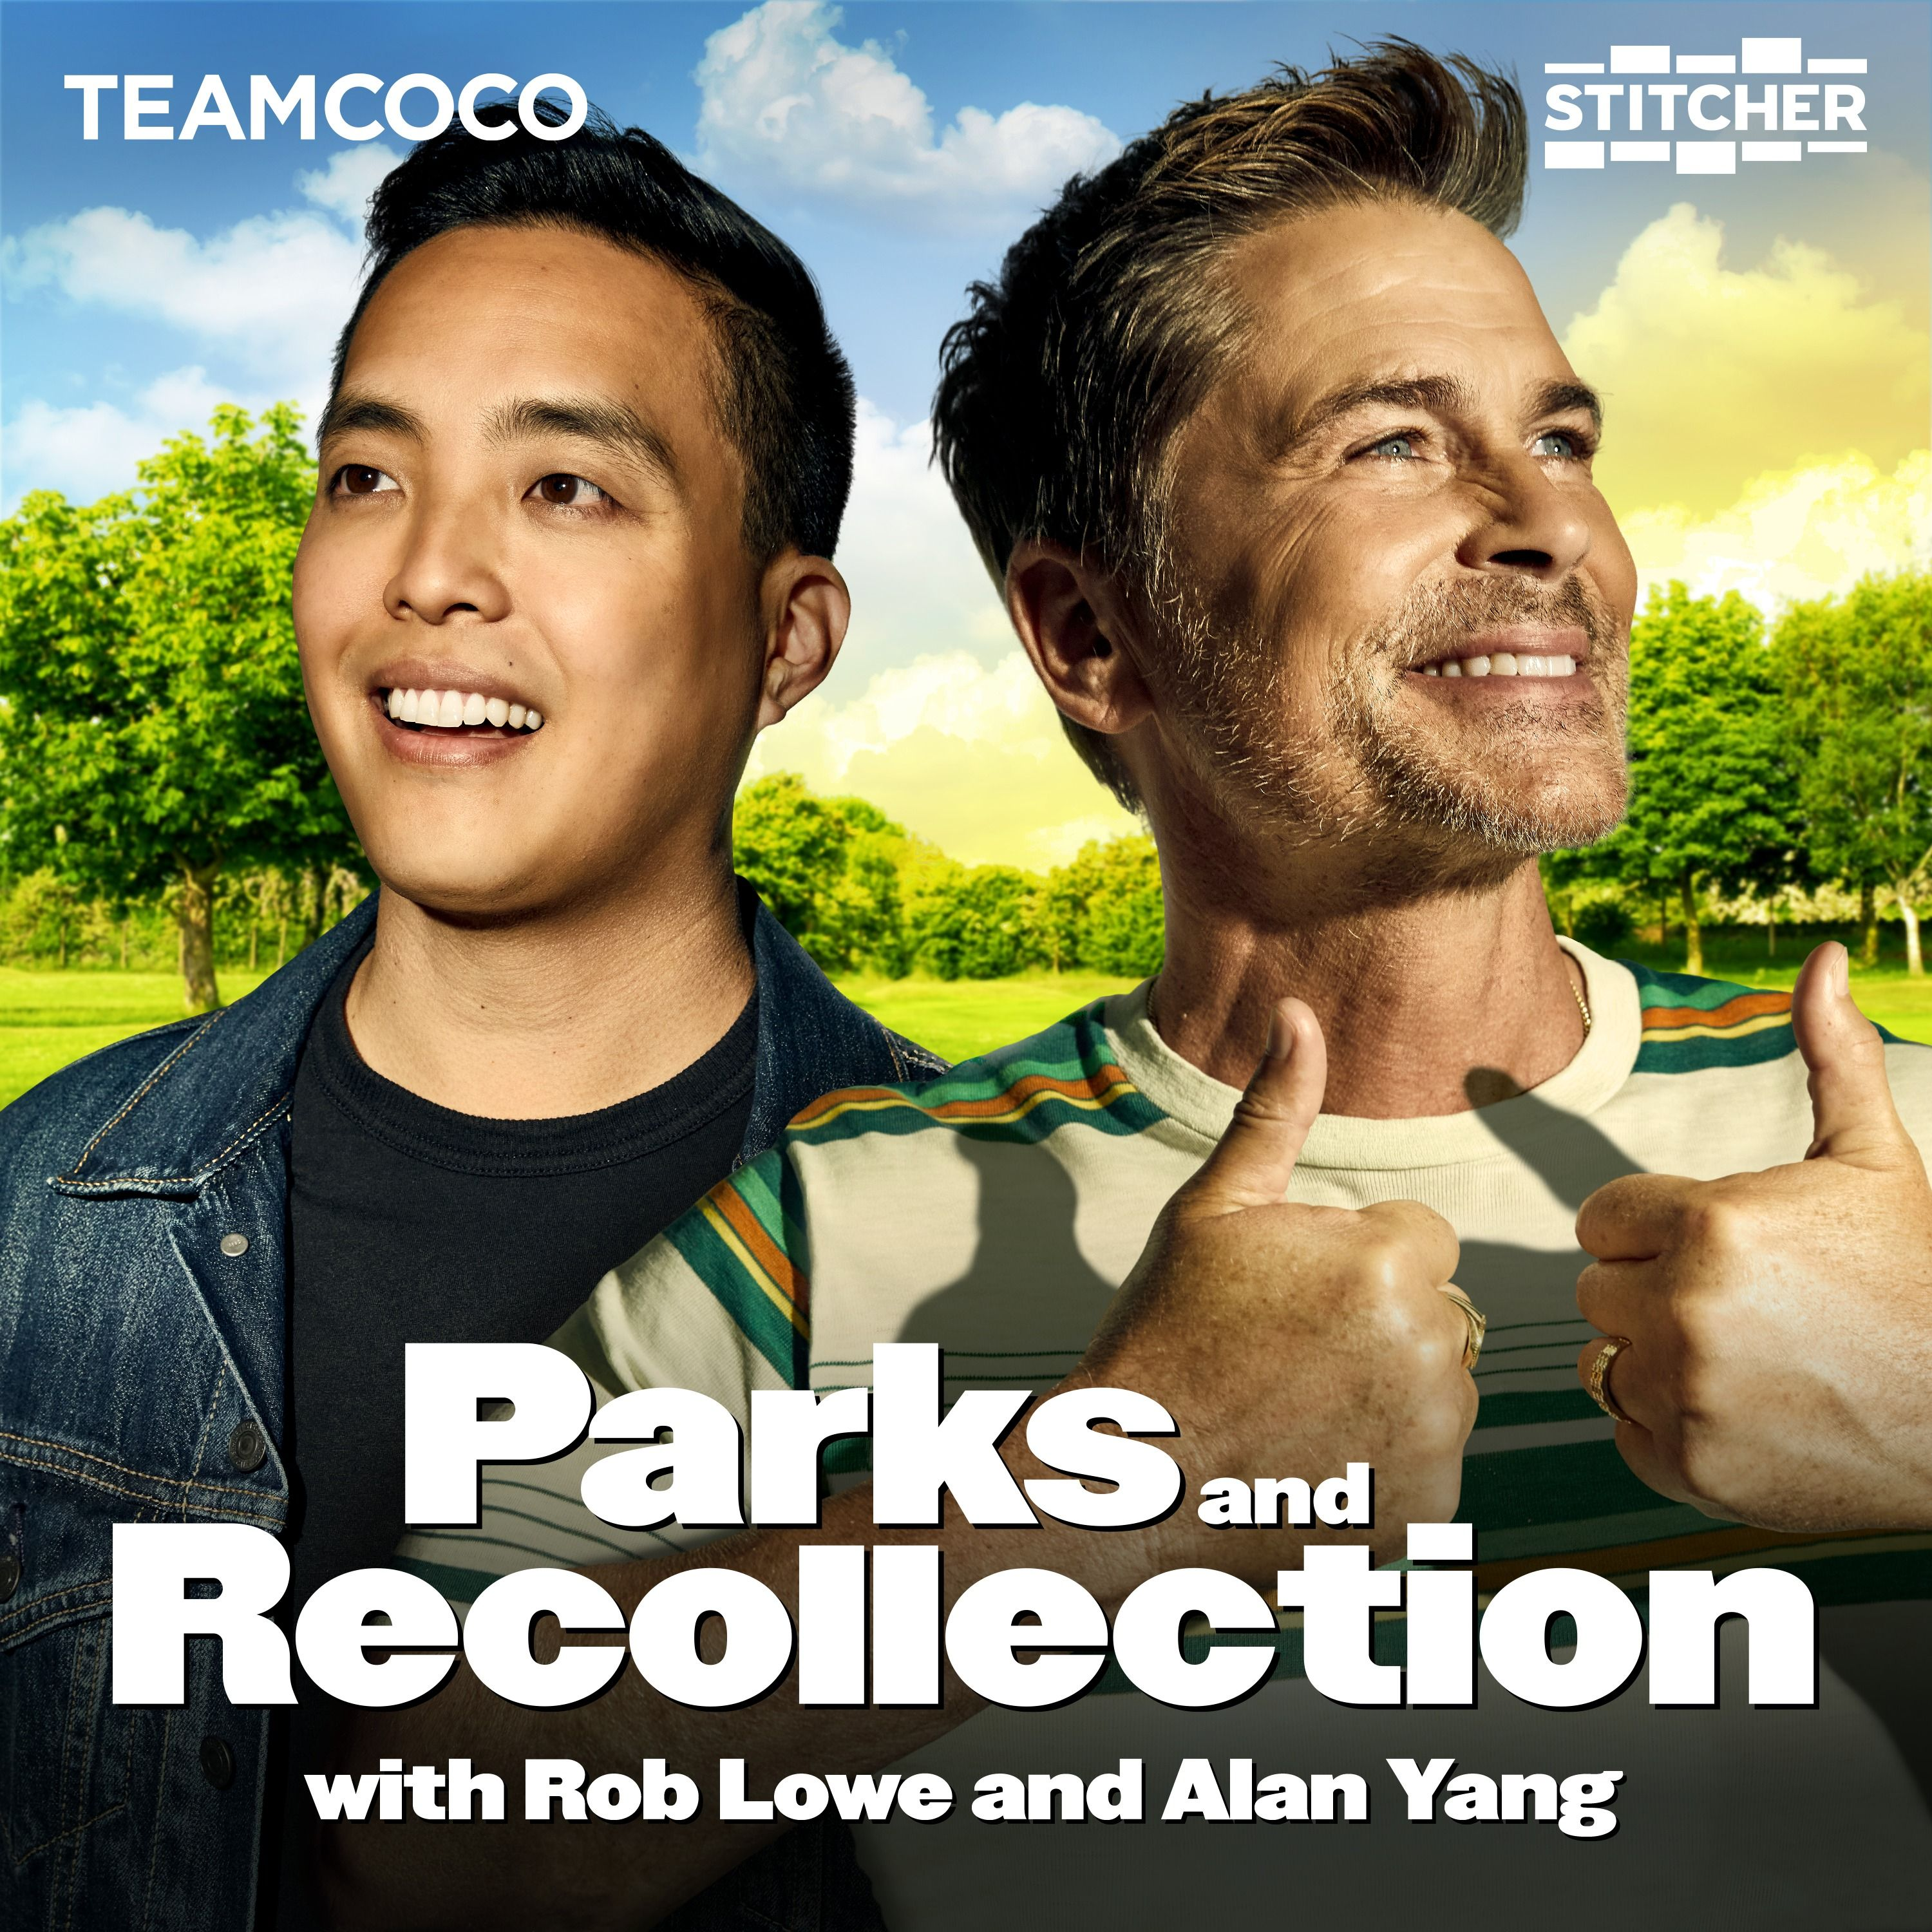 Parks and Recollection by Team Coco and Stitcher